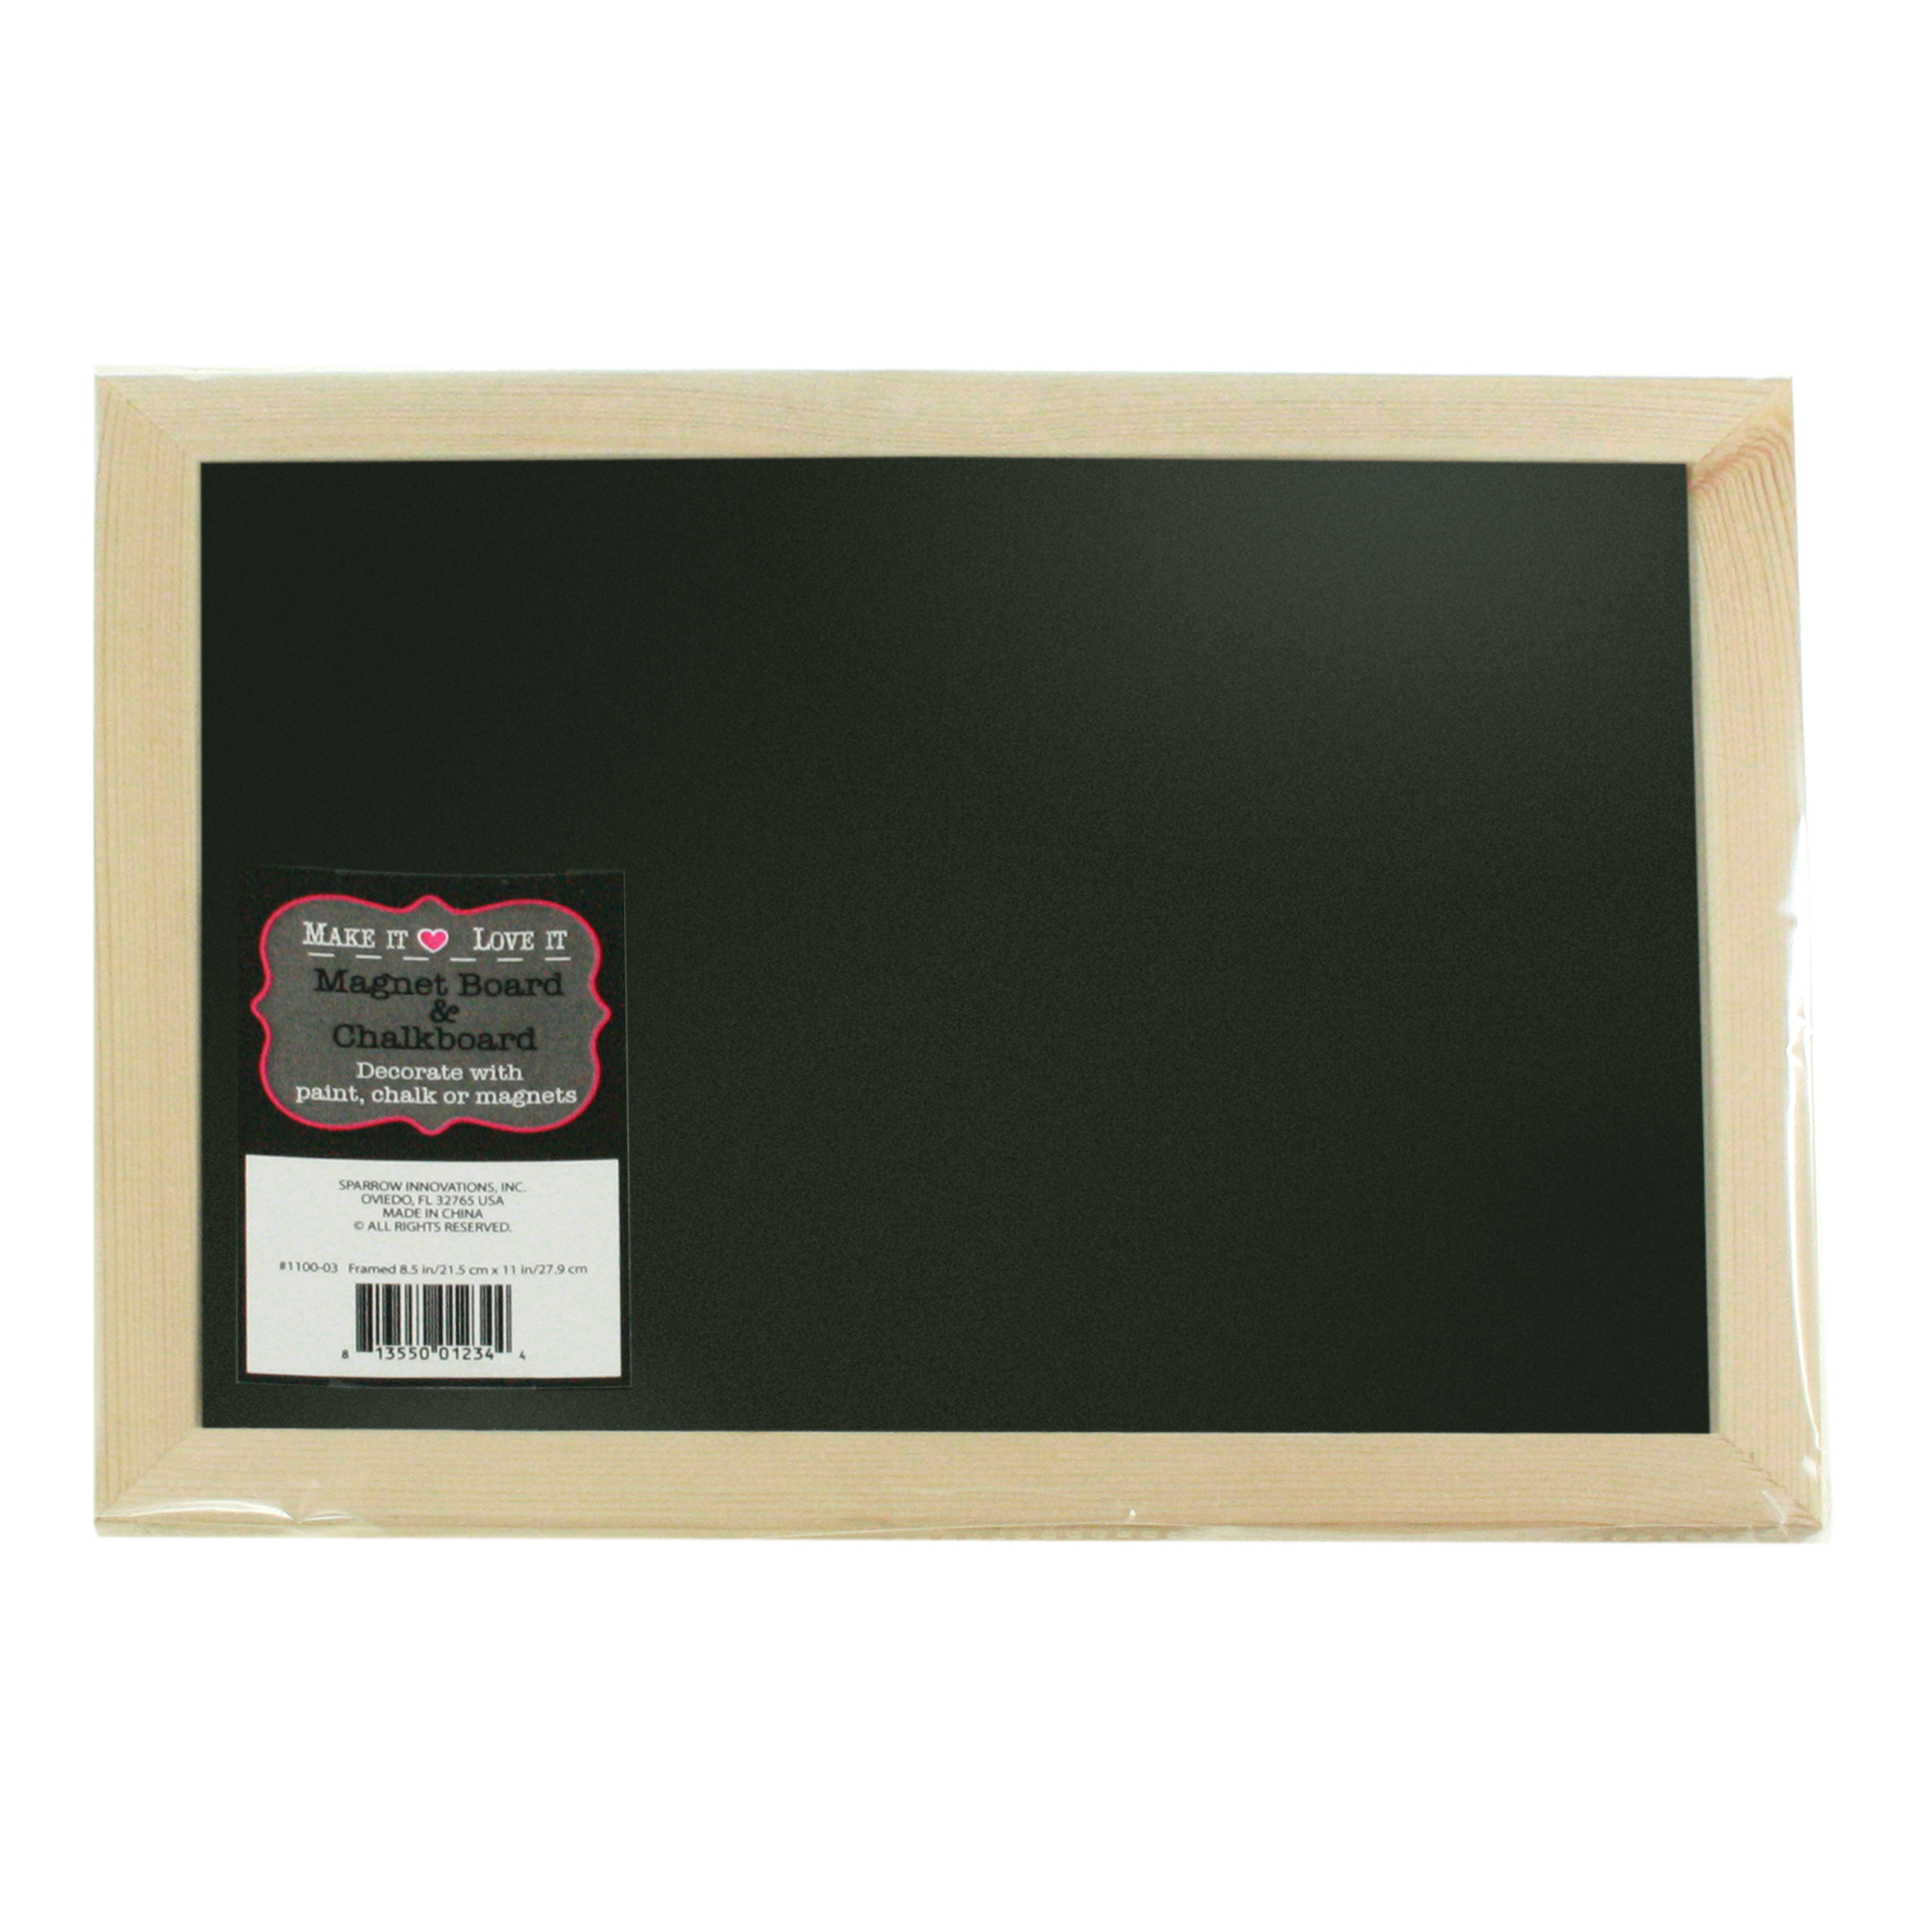 Make It Love It 8.5\u0022x11\u0022 Magnet Board &Chalkboard